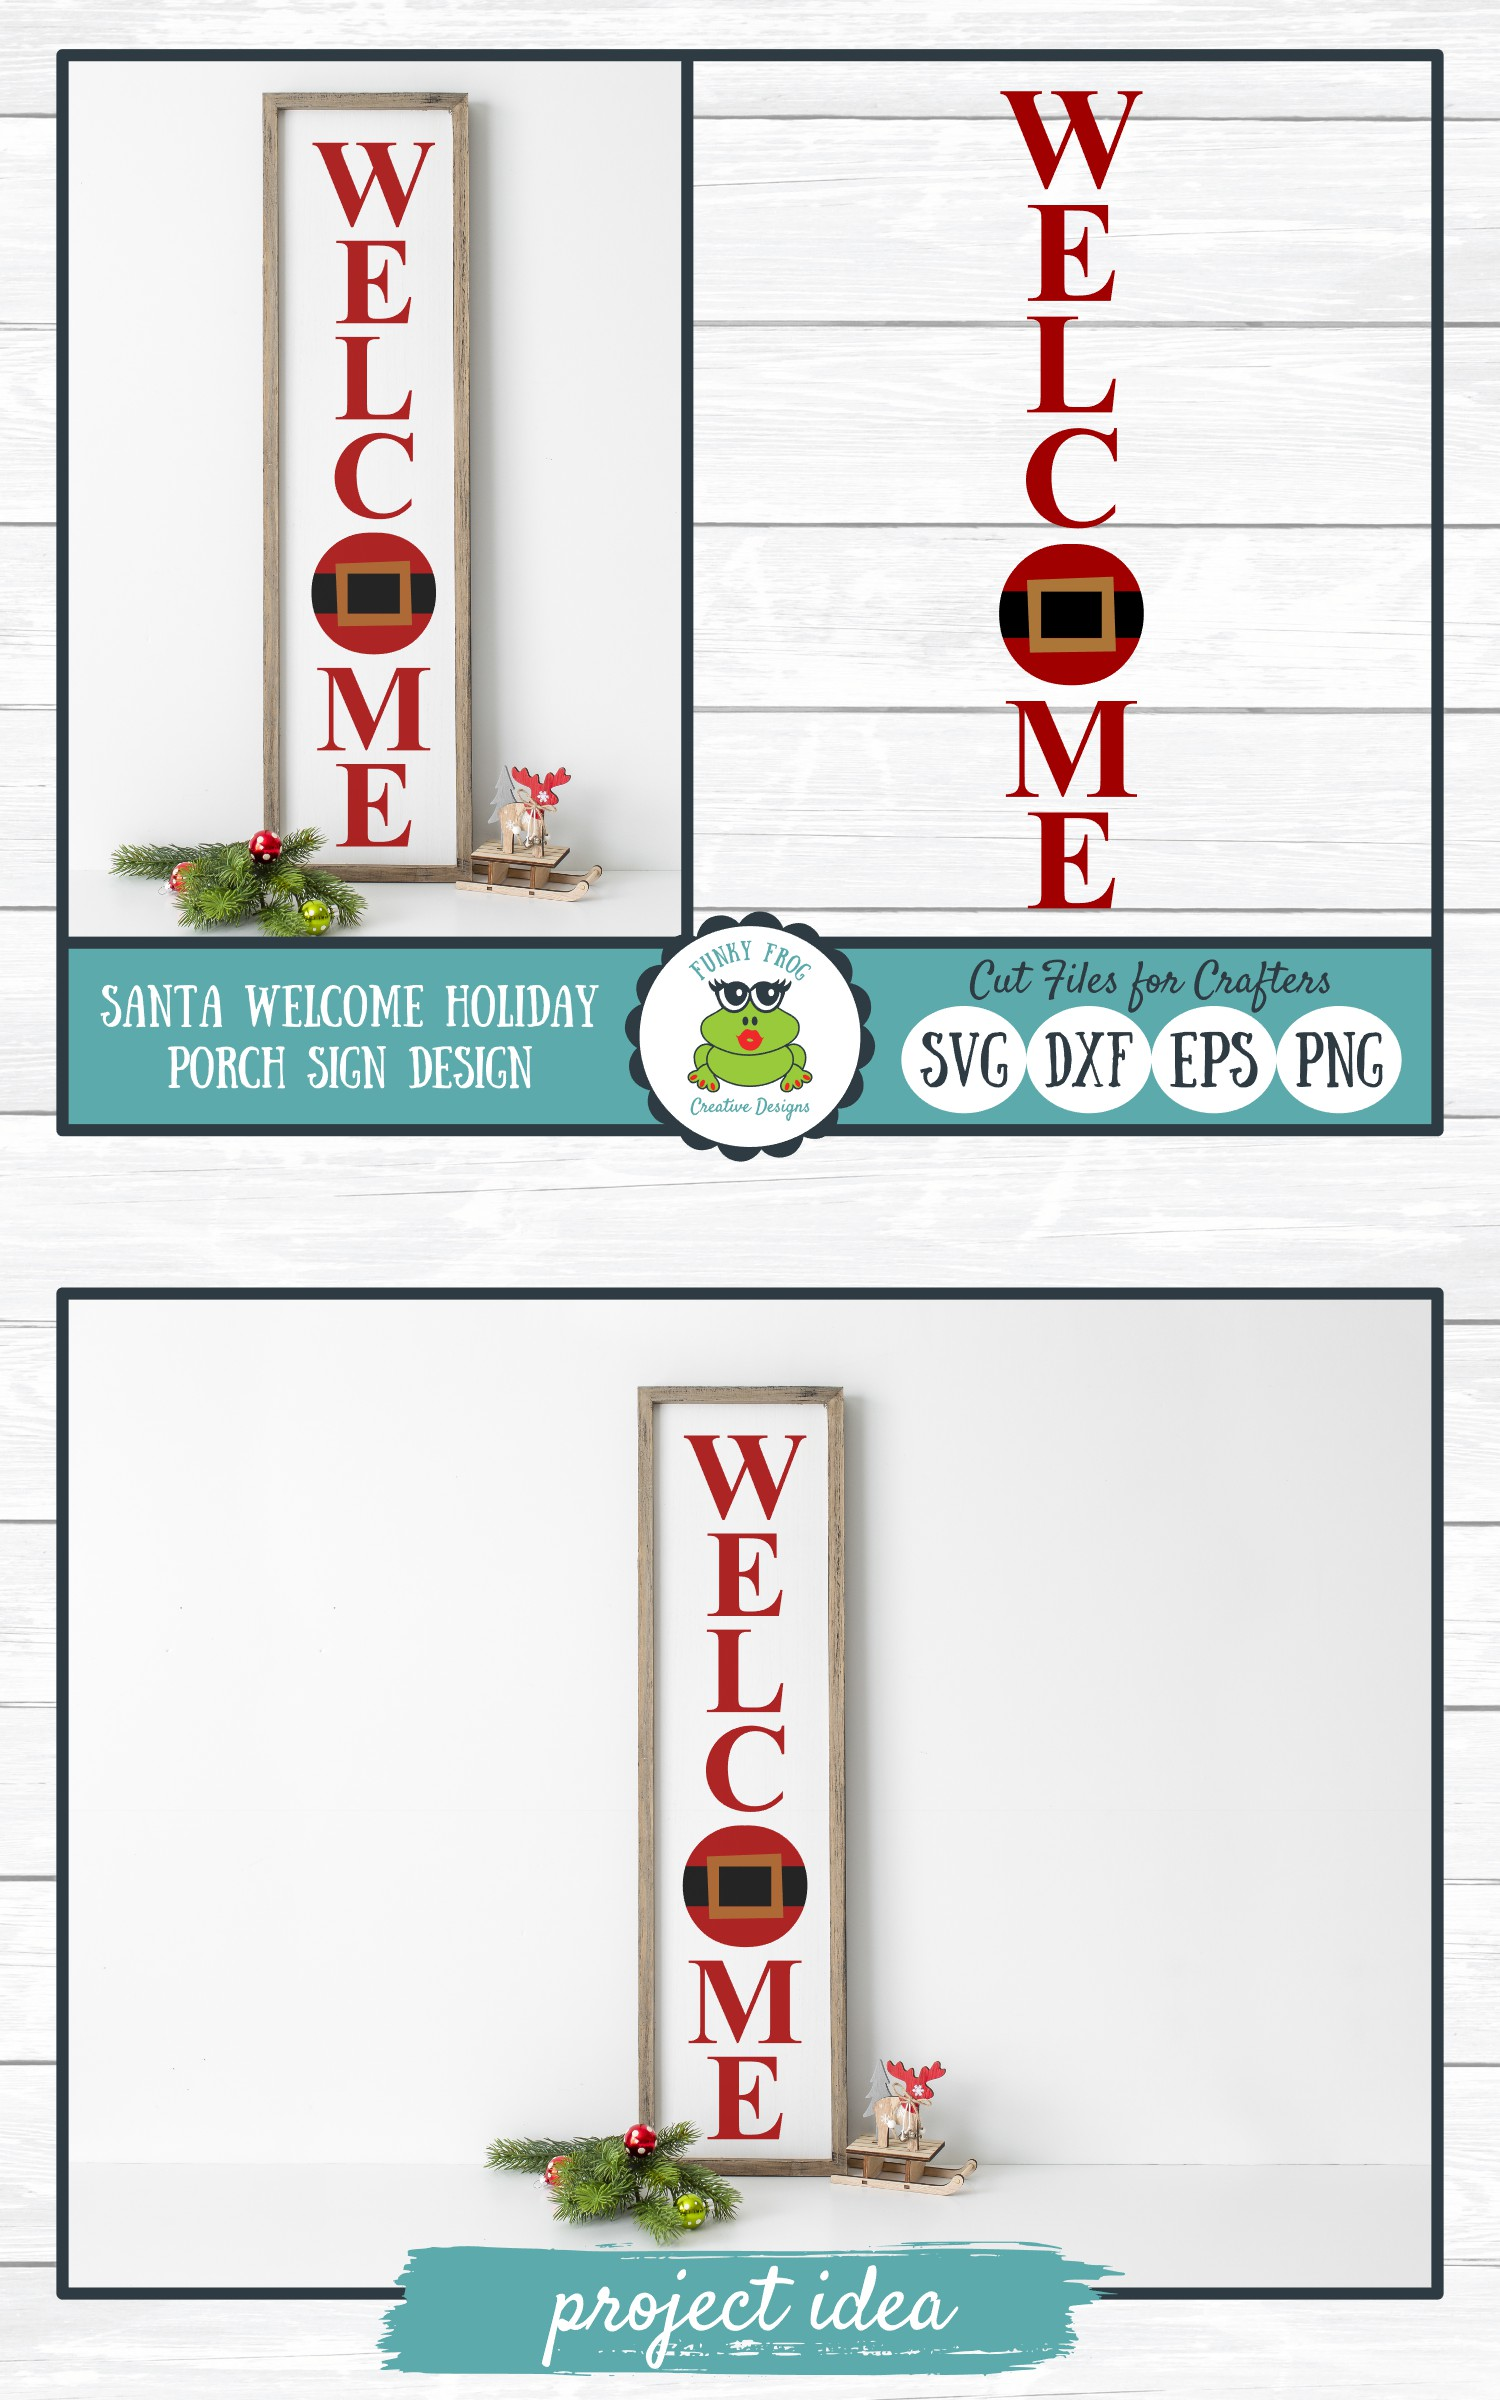 Welcome Holiday Porch Sign Design, SVG Cut File for Crafters example image 4